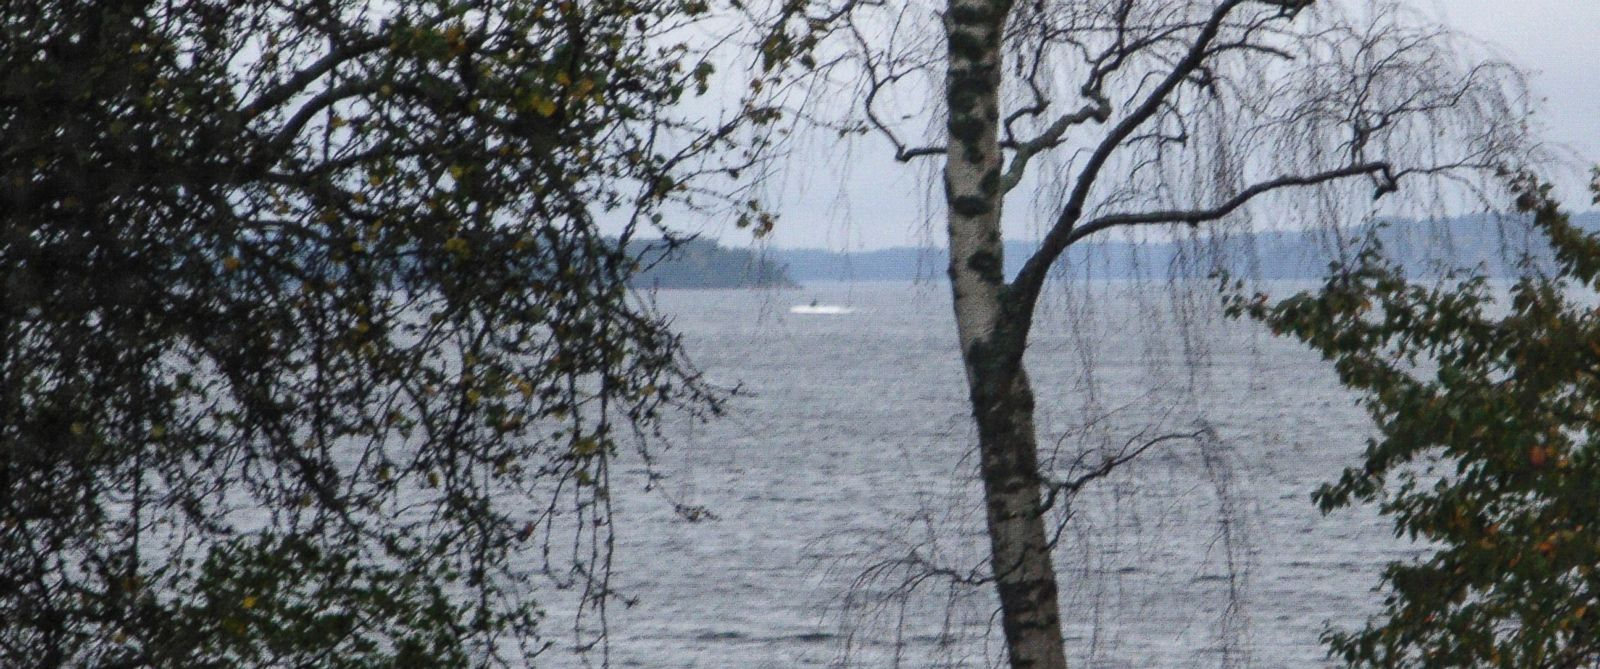 PHOTO: On Sunday, Oct. 19, 2014, a partially submerged object is visible in the water at center, in the Stockholm archipelago, Sweden.